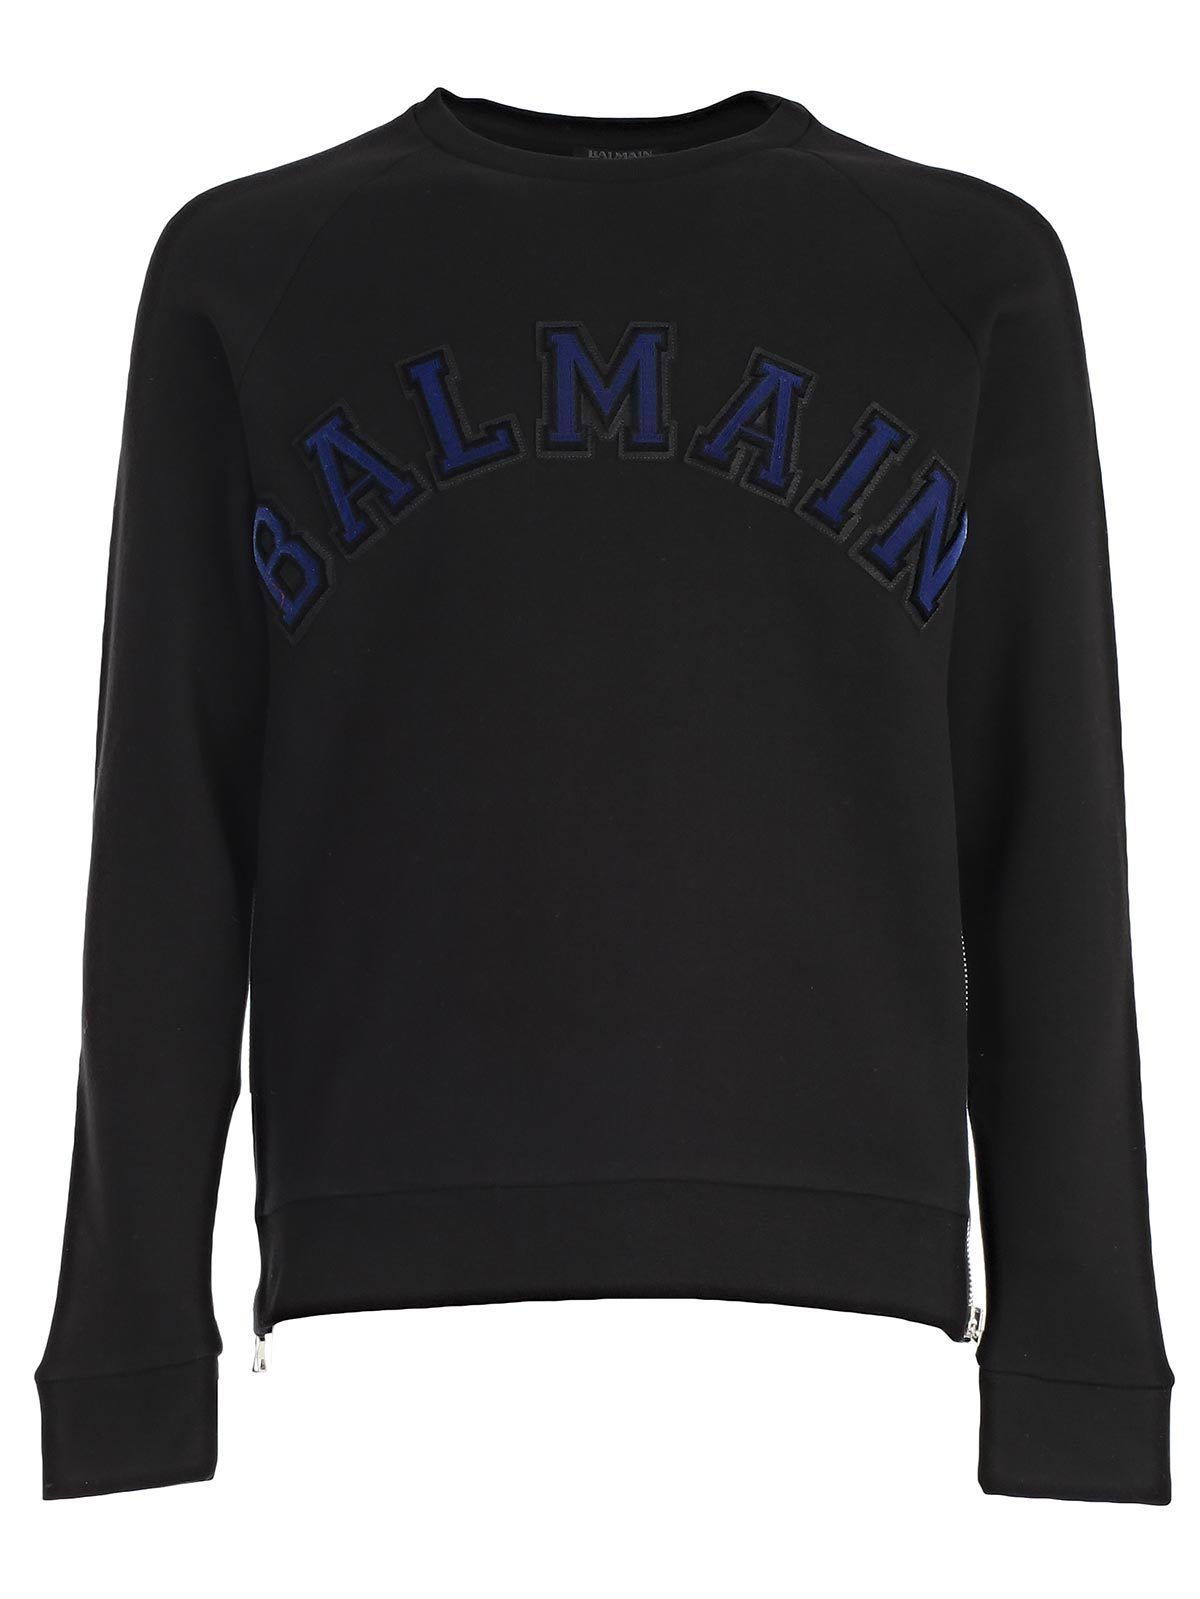 3380aef3b BALMAIN BALMAIN EMBROIDERED BRAND LOGO SWEATER.  balmain  cloth ...